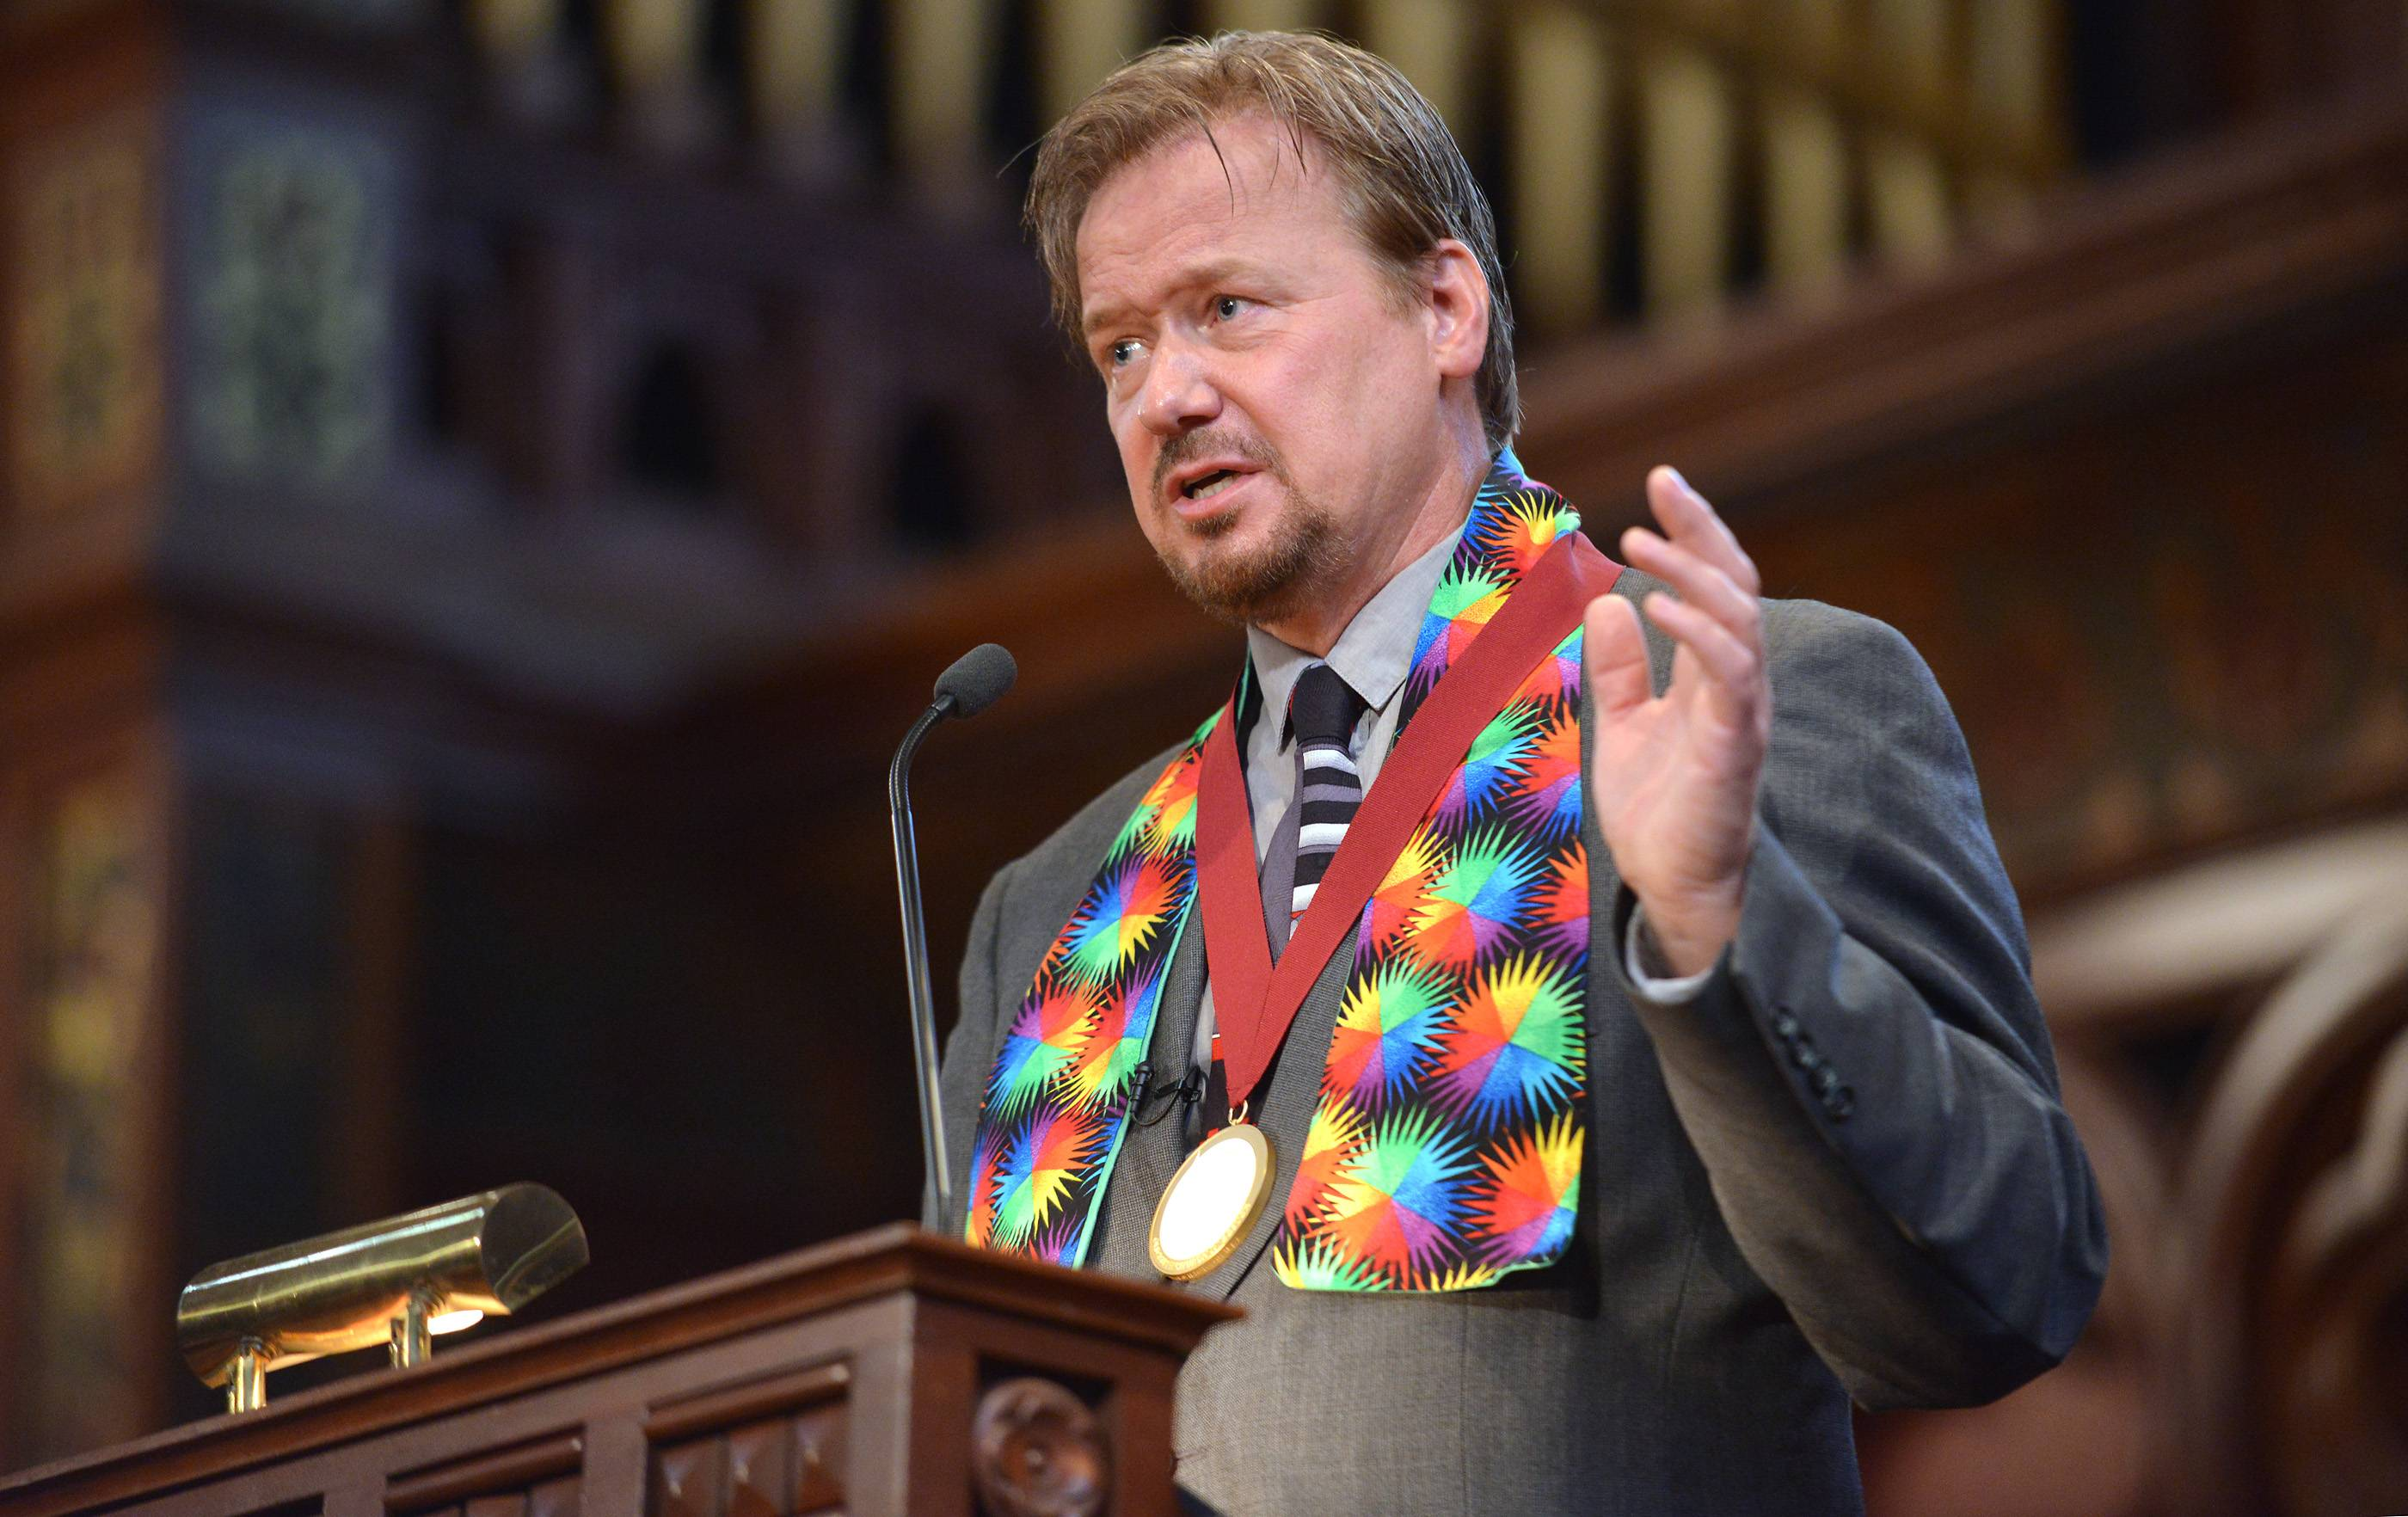 Frank Schaefer lost his job but not his voice. Defrocked by the United Methodist Church six months ago for officiating his son's same-sex wedding, He's told his story dozens of times to largely sympathetic audiences around the country.